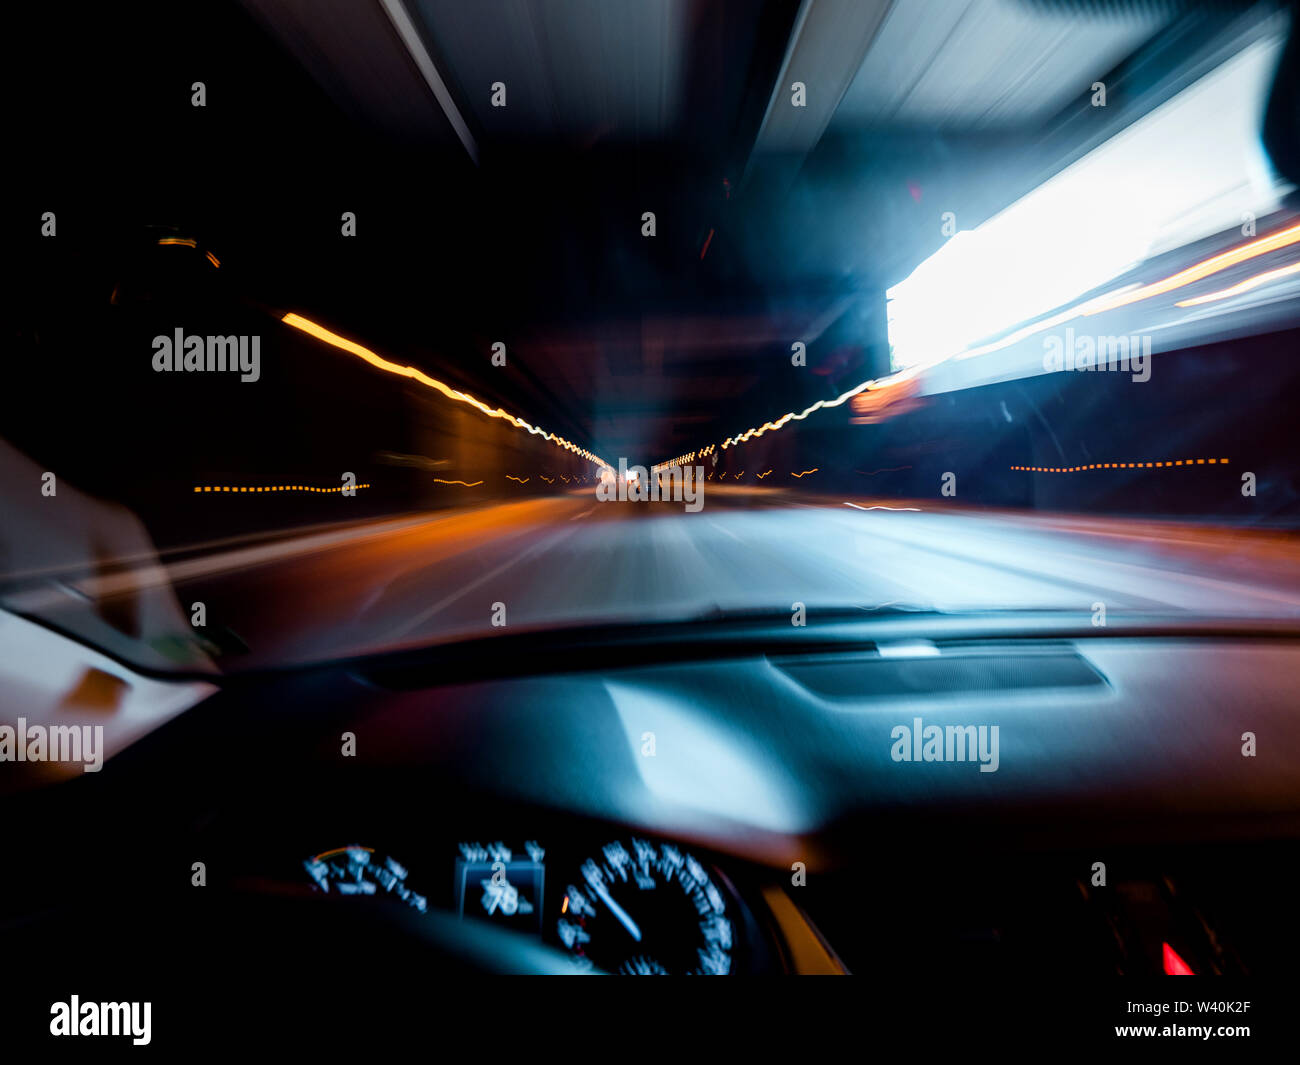 Defocused driver personal perspective point of view POV at the front commuting cars and light trails inside long tunnel safety security concept - Stock Image